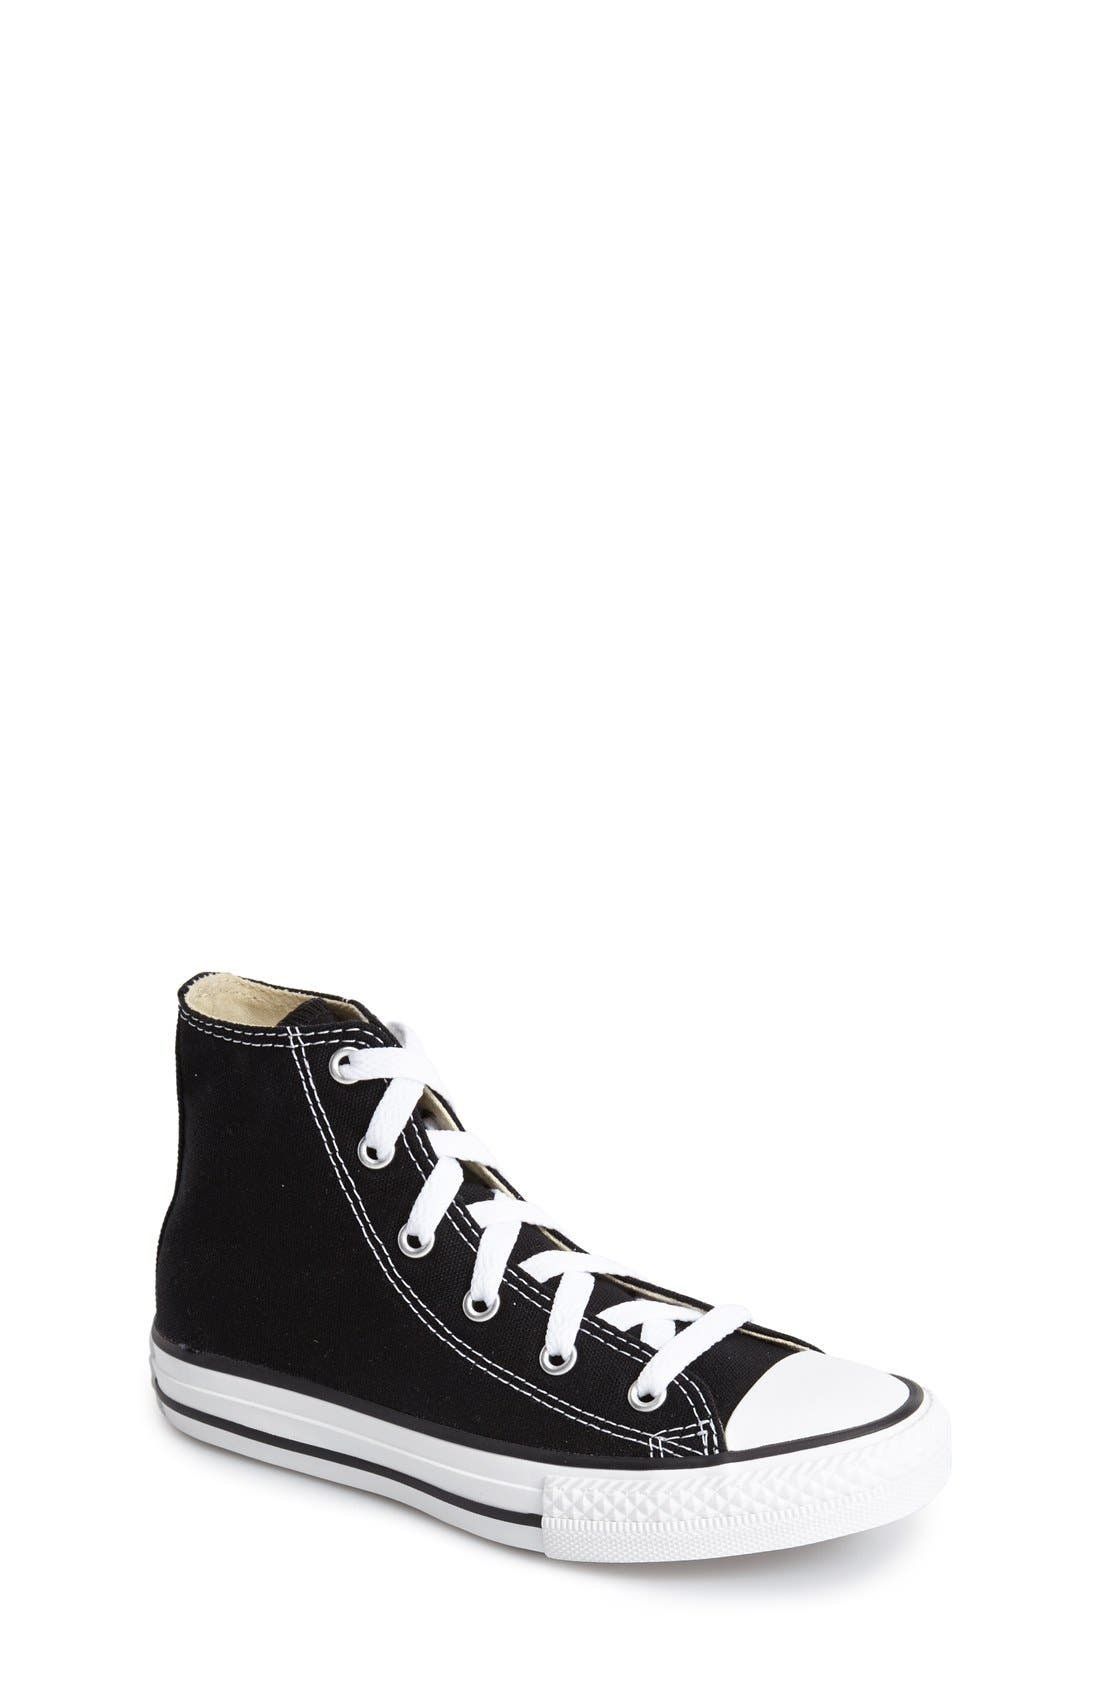 converse shoes for girls high cut black. main image - converse chuck taylor® high top sneaker (toddler, little kid \u0026 shoes for girls cut black